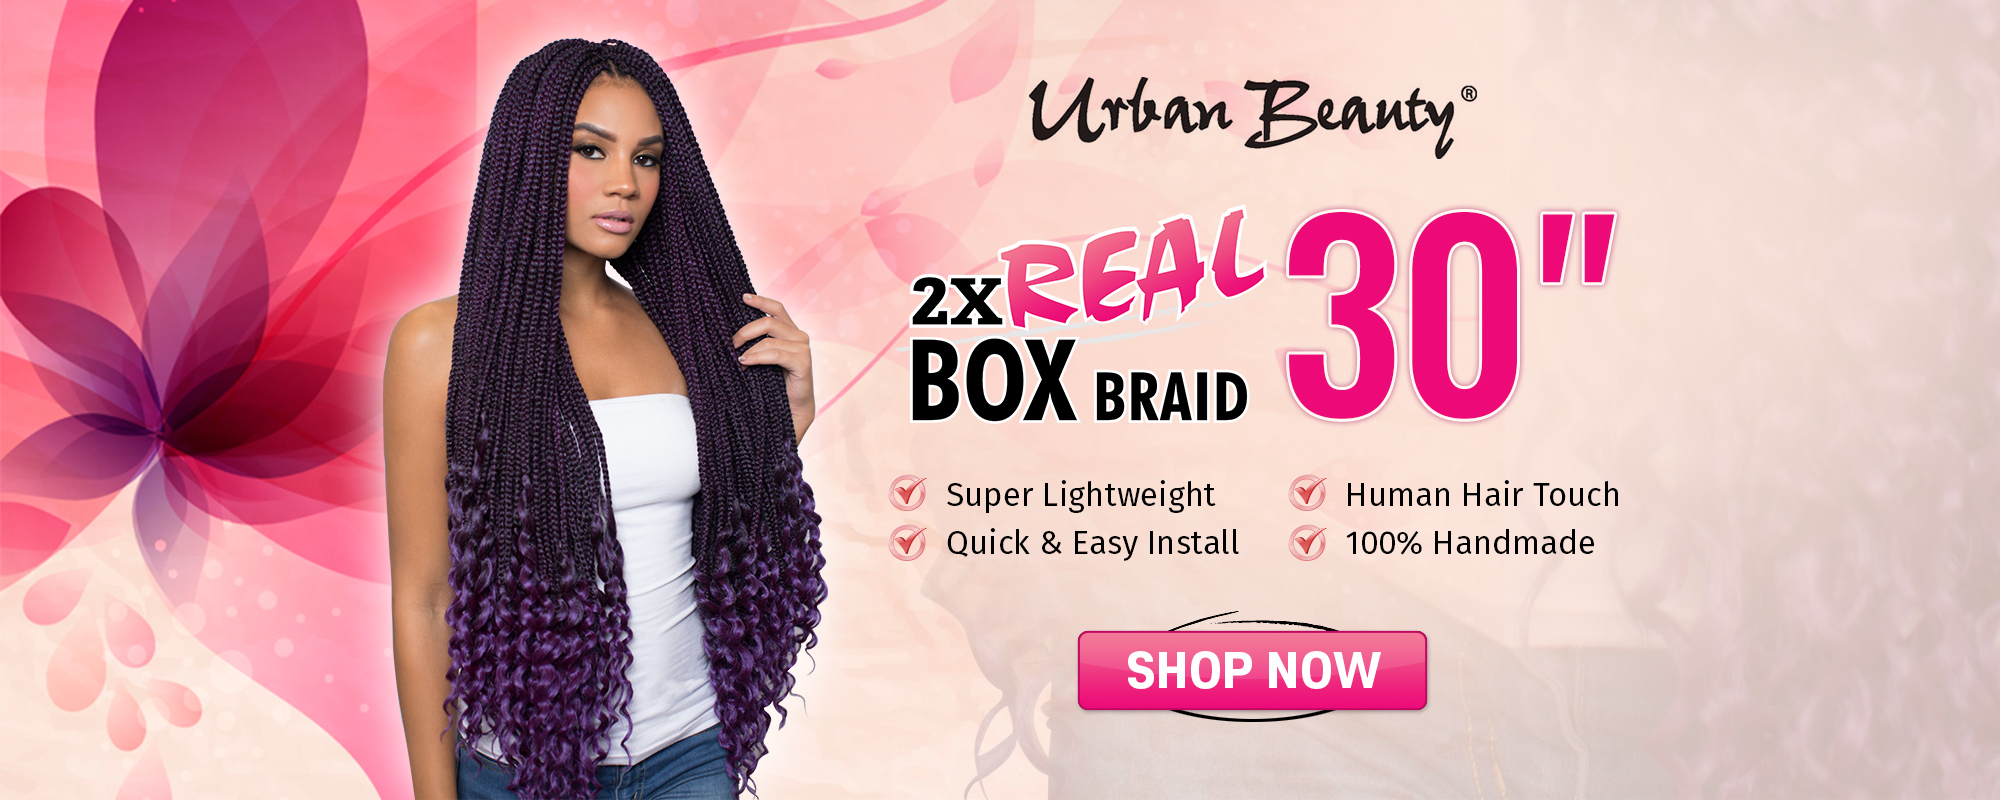 Urban Beauty 2x Real Box Braid 30 Hair Depot Online